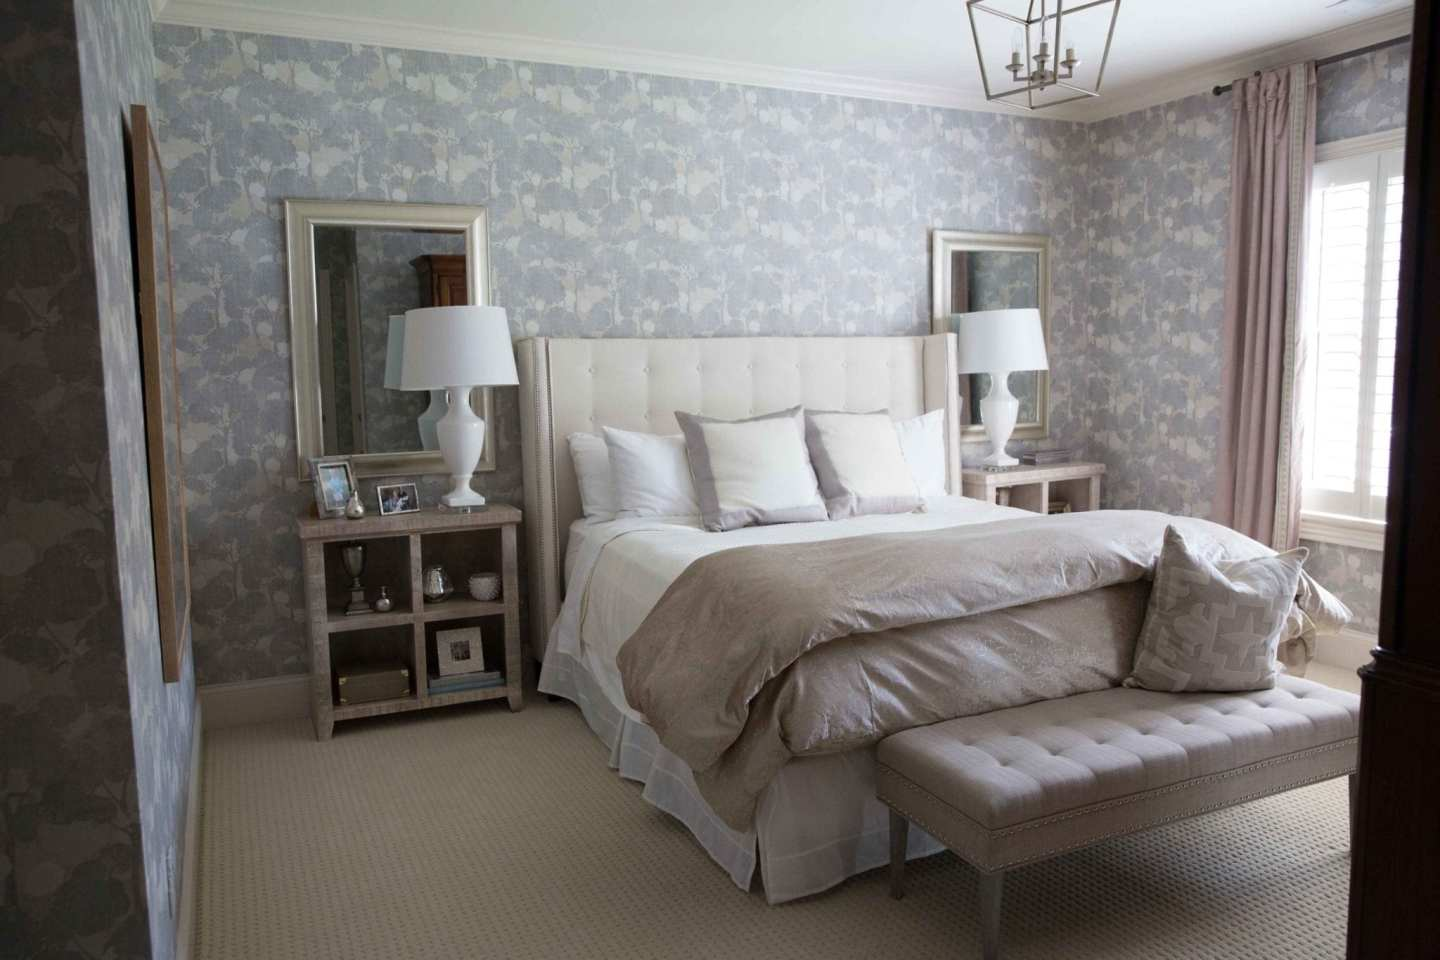 Floral Design Wallpaper in Guest Bedroom makeover. White table lamps.